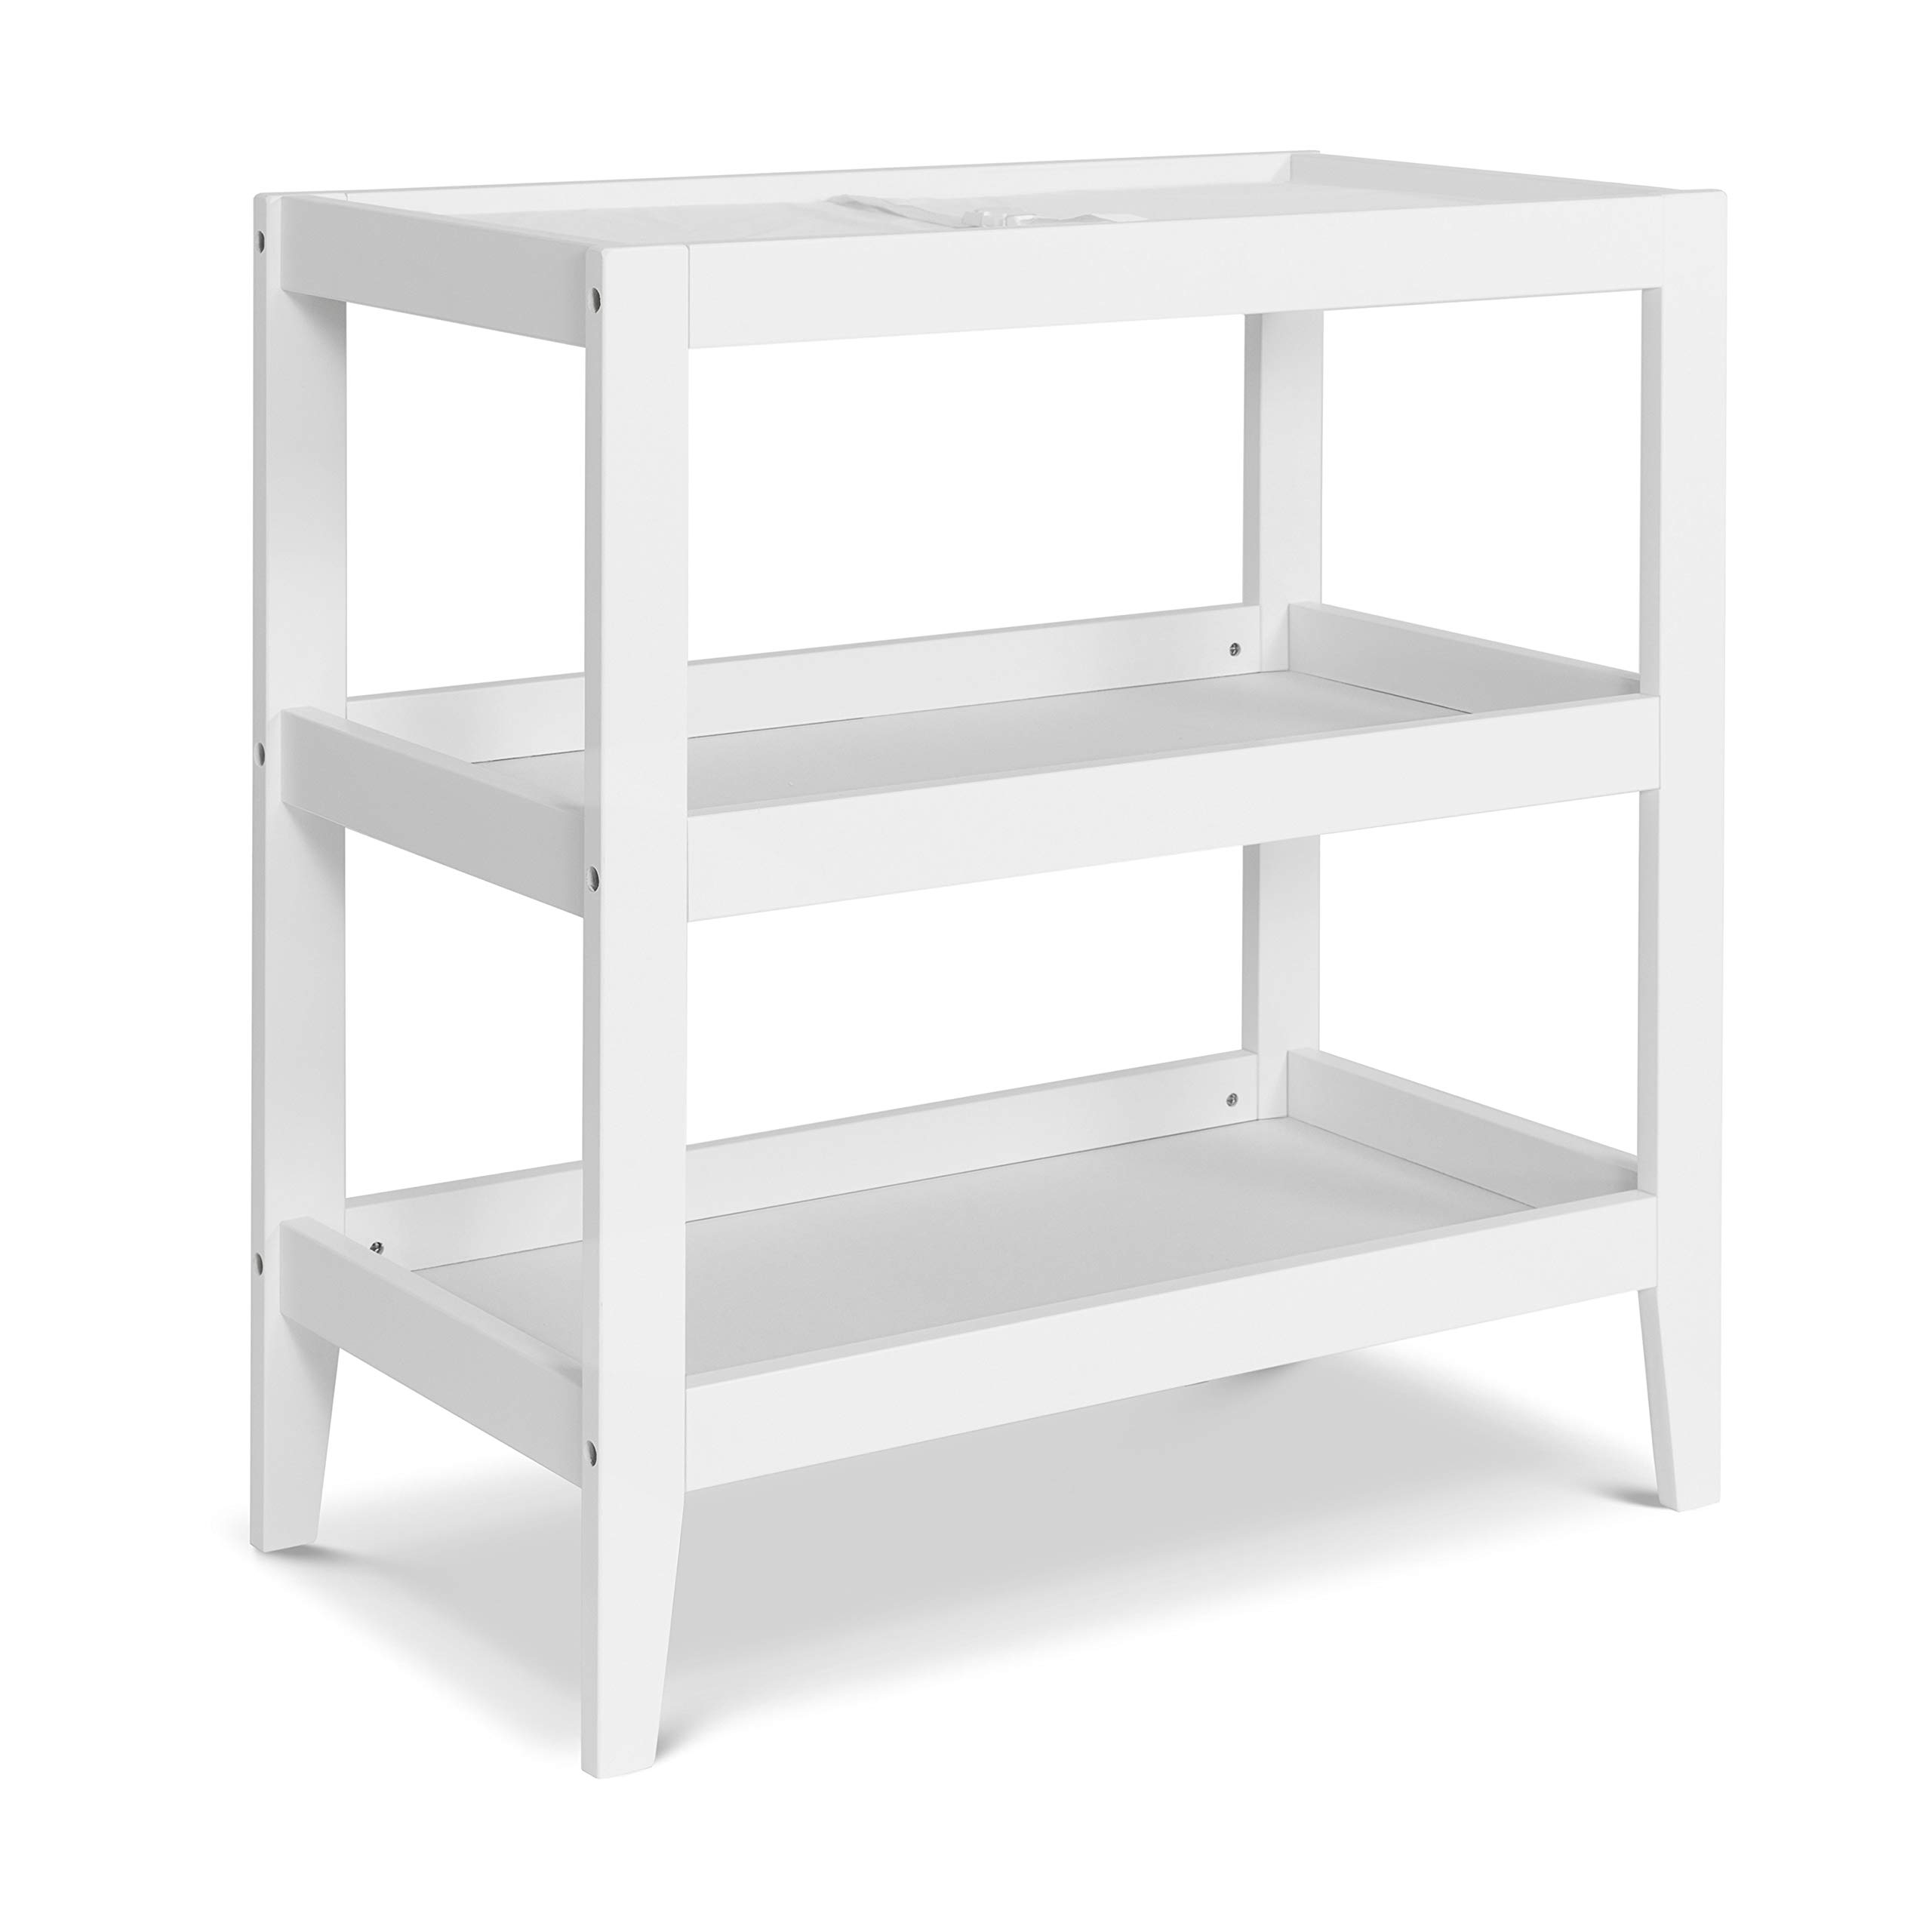 Carter's by DaVinci Colby Changing Table, White by Carter's by DaVinci